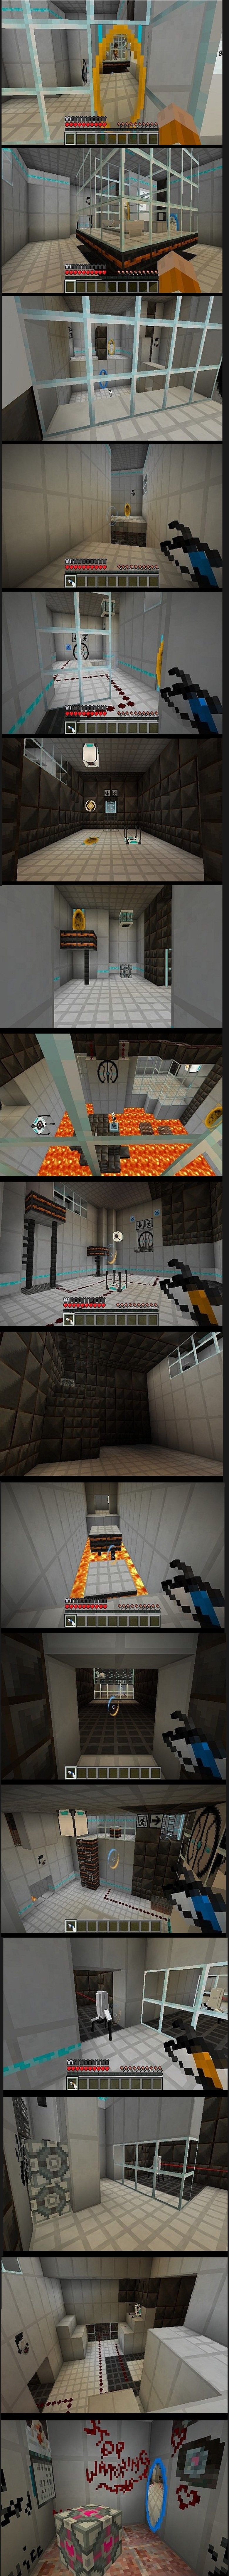 Portal Craft. Credit to emptygrave (Add & Sub if you want) The link has everything you want and need. (Except for Glados I think) planetminecraft.com/projec